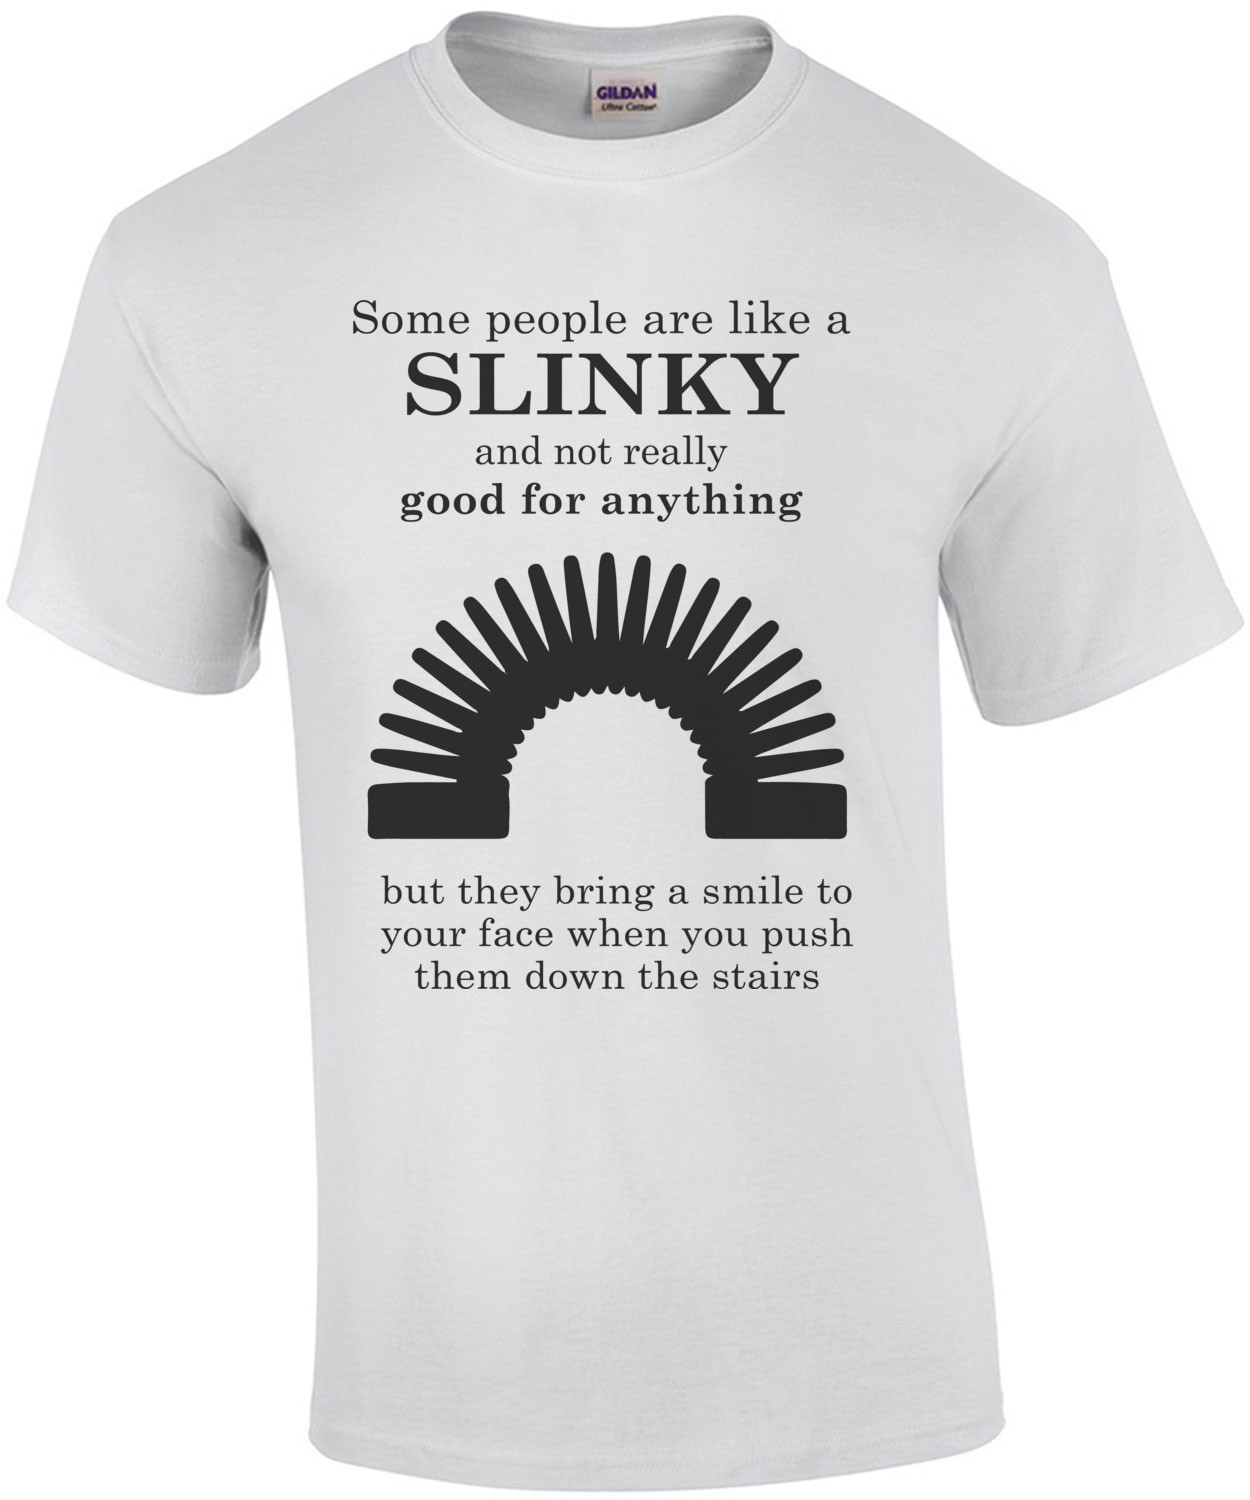 Some people are like a slinky... Funny T-Shirt